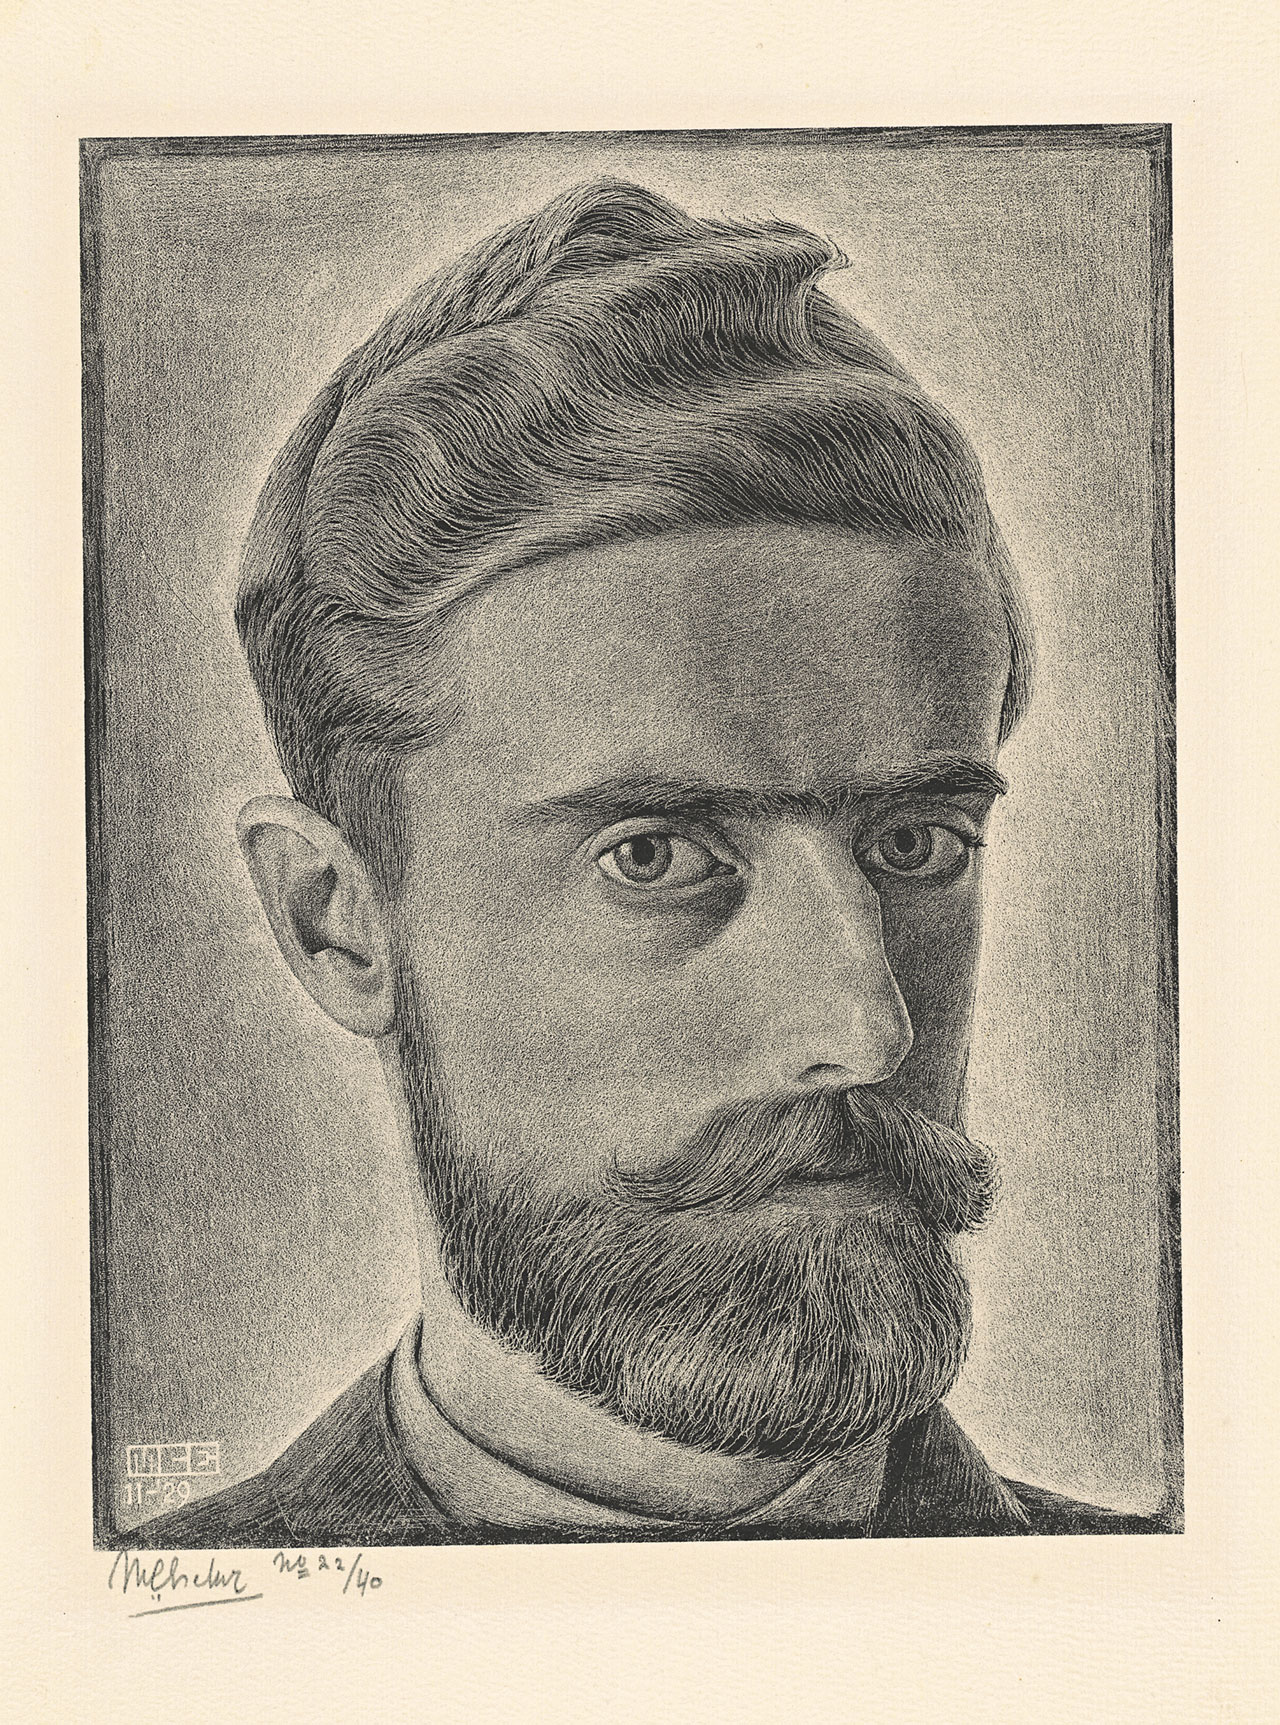 M. C. Escher, Self-portrait, November 1929, lithograph. Escher Collection, Gemeentemuseum Den Haag, The Hague, the Netherlands © The M. C. Escher Company, the Netherlands. All rights reserved.